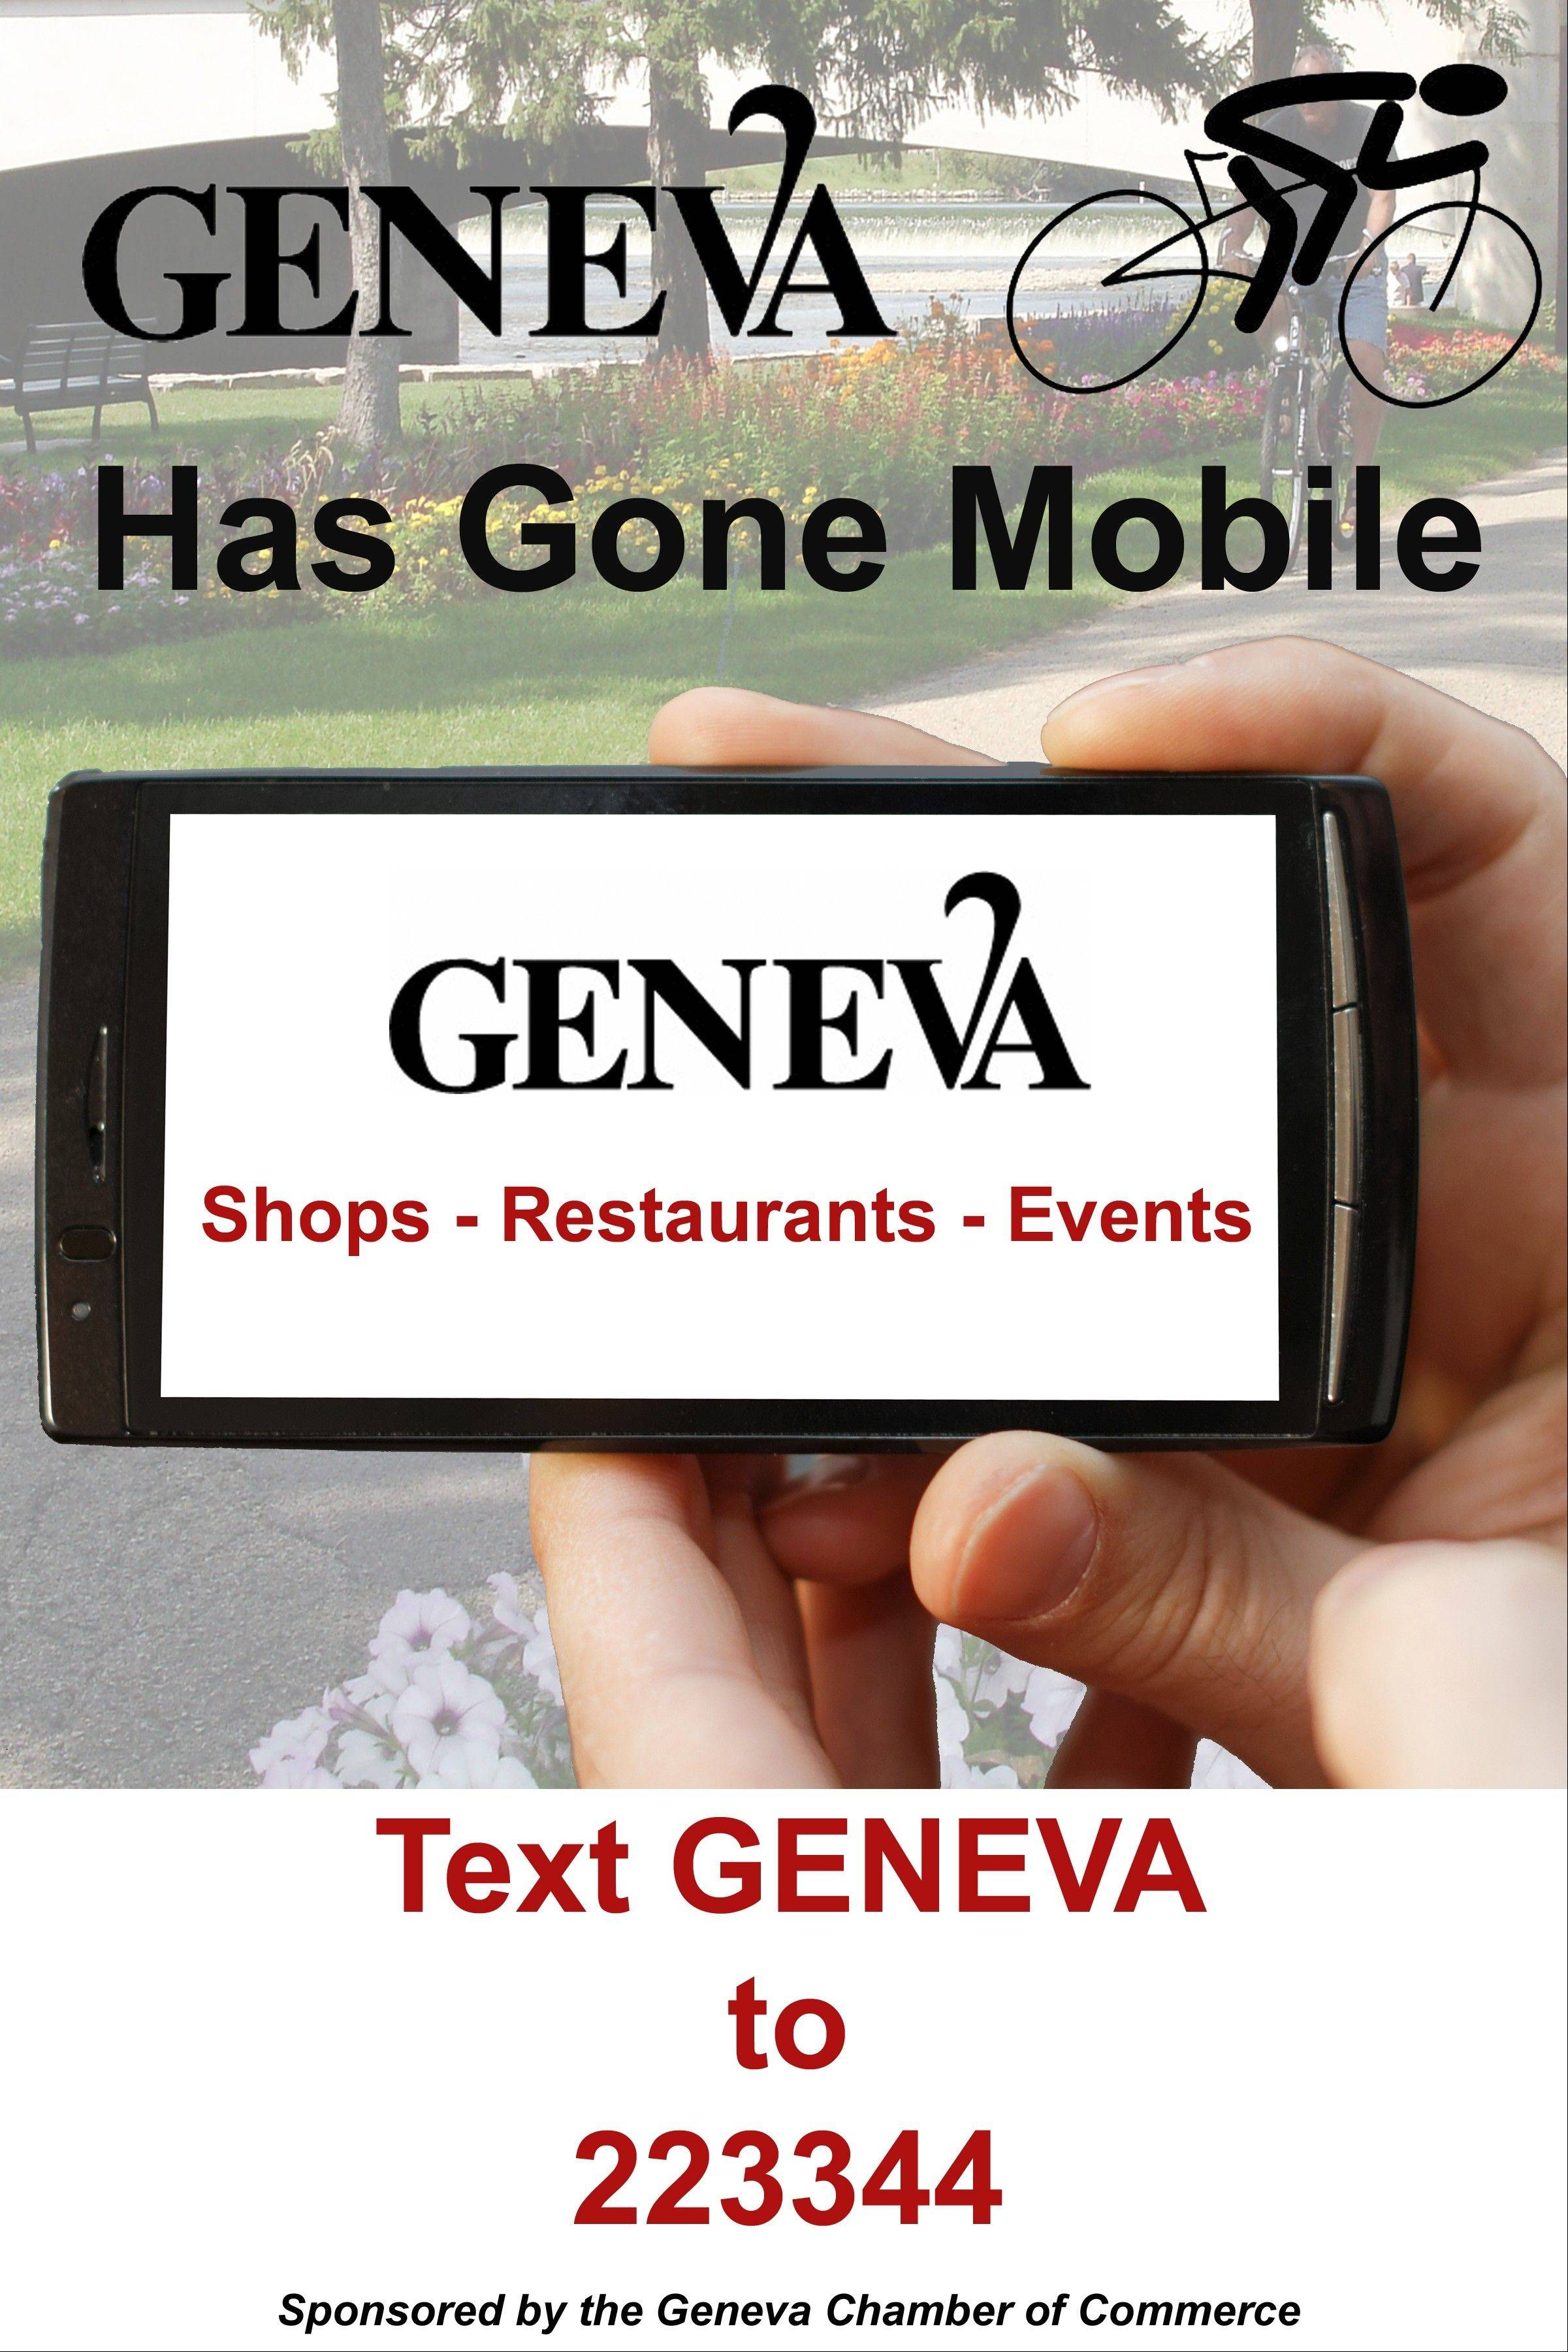 Geneva's e-specials via text a hit with local shoppers